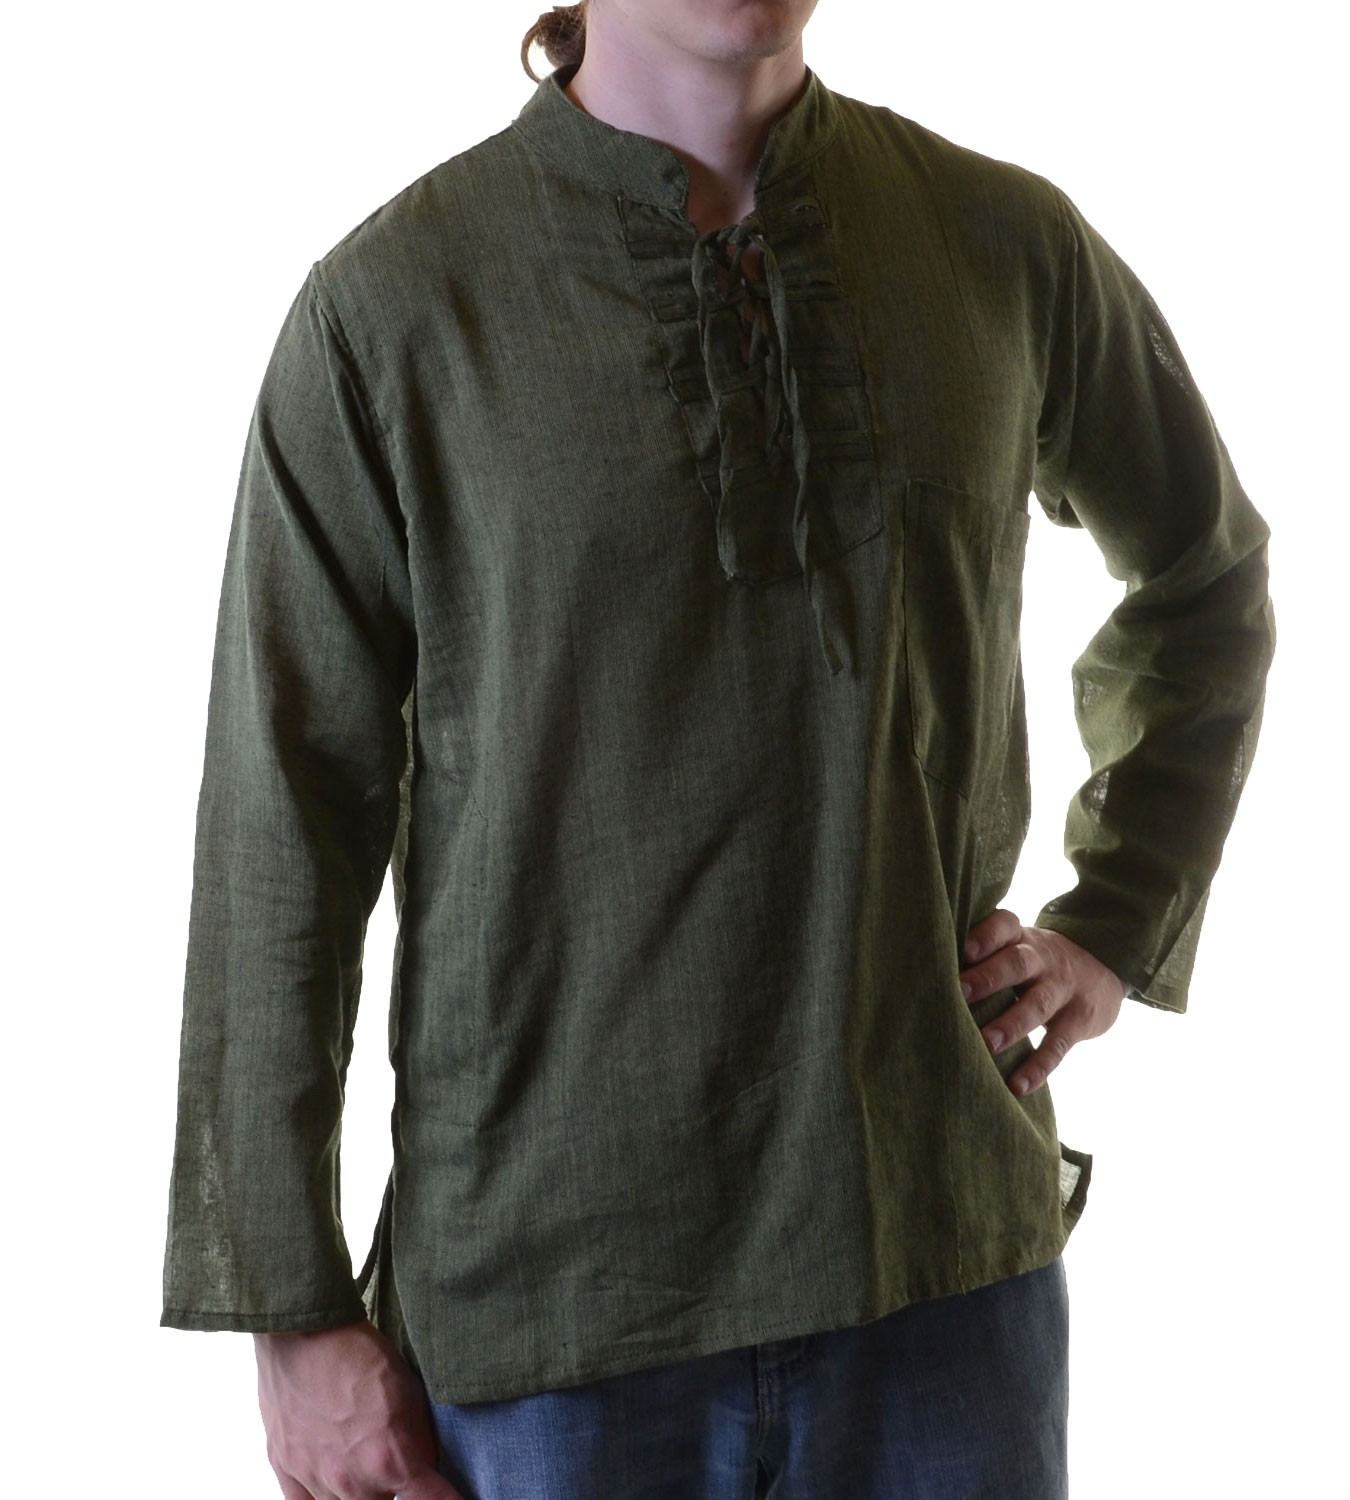 Fisherman kurtha ethno shirt hippie nepal